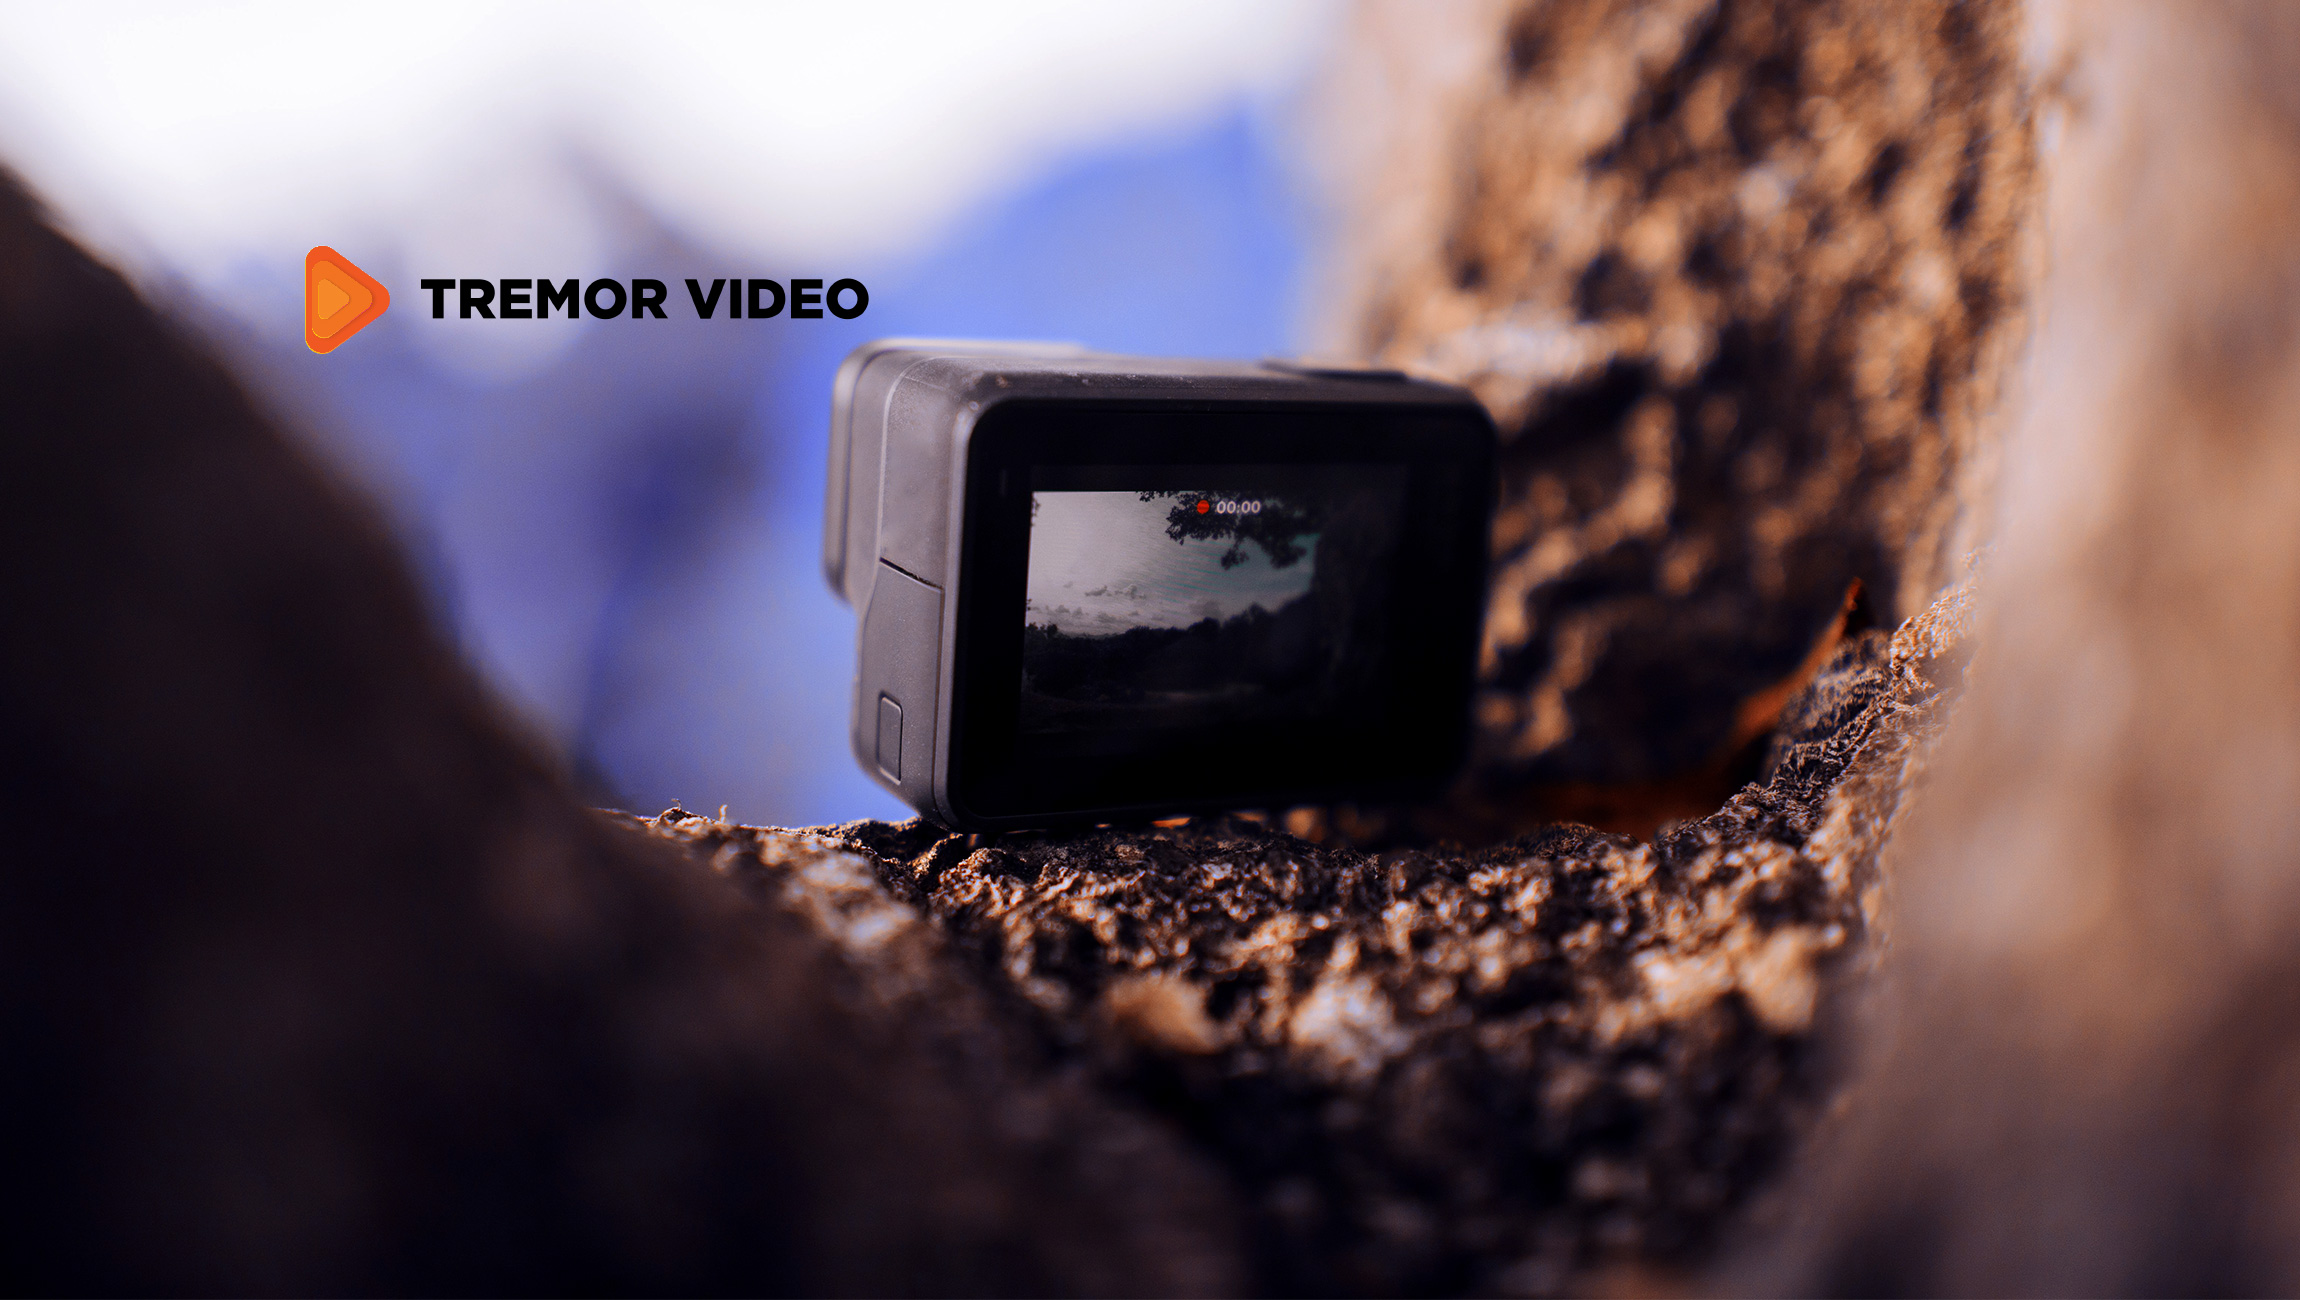 Tremor Video Brings Native Ads to LG Smart TVs